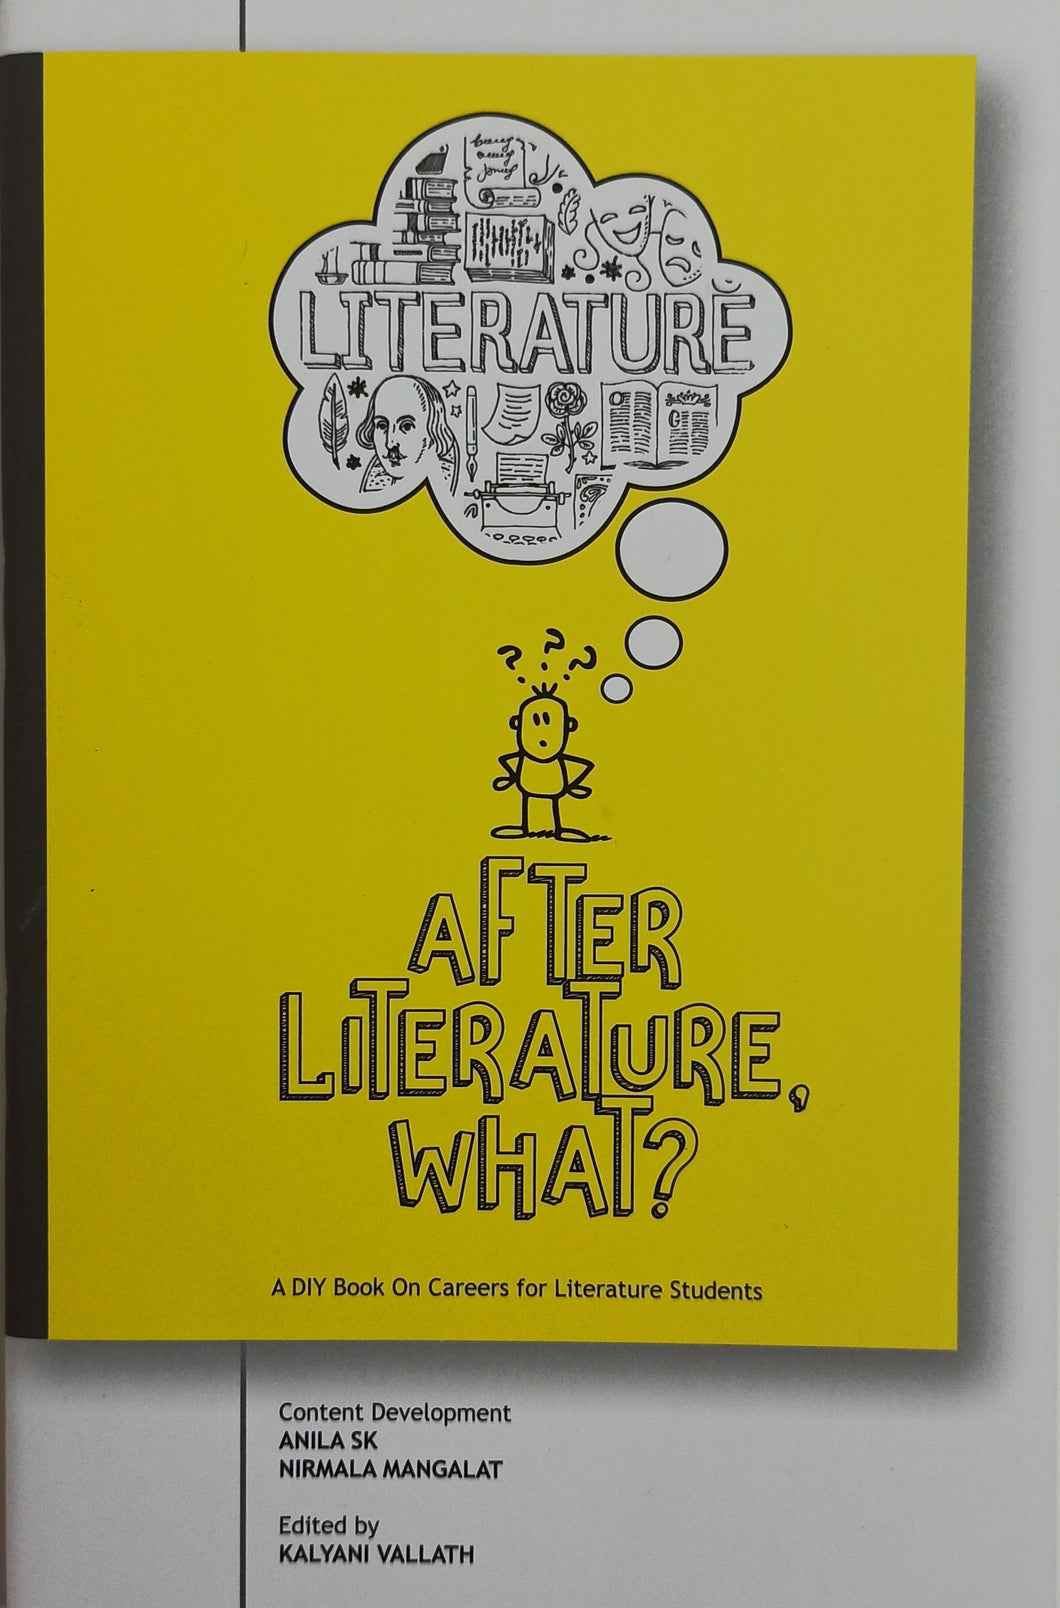 After Literature What?